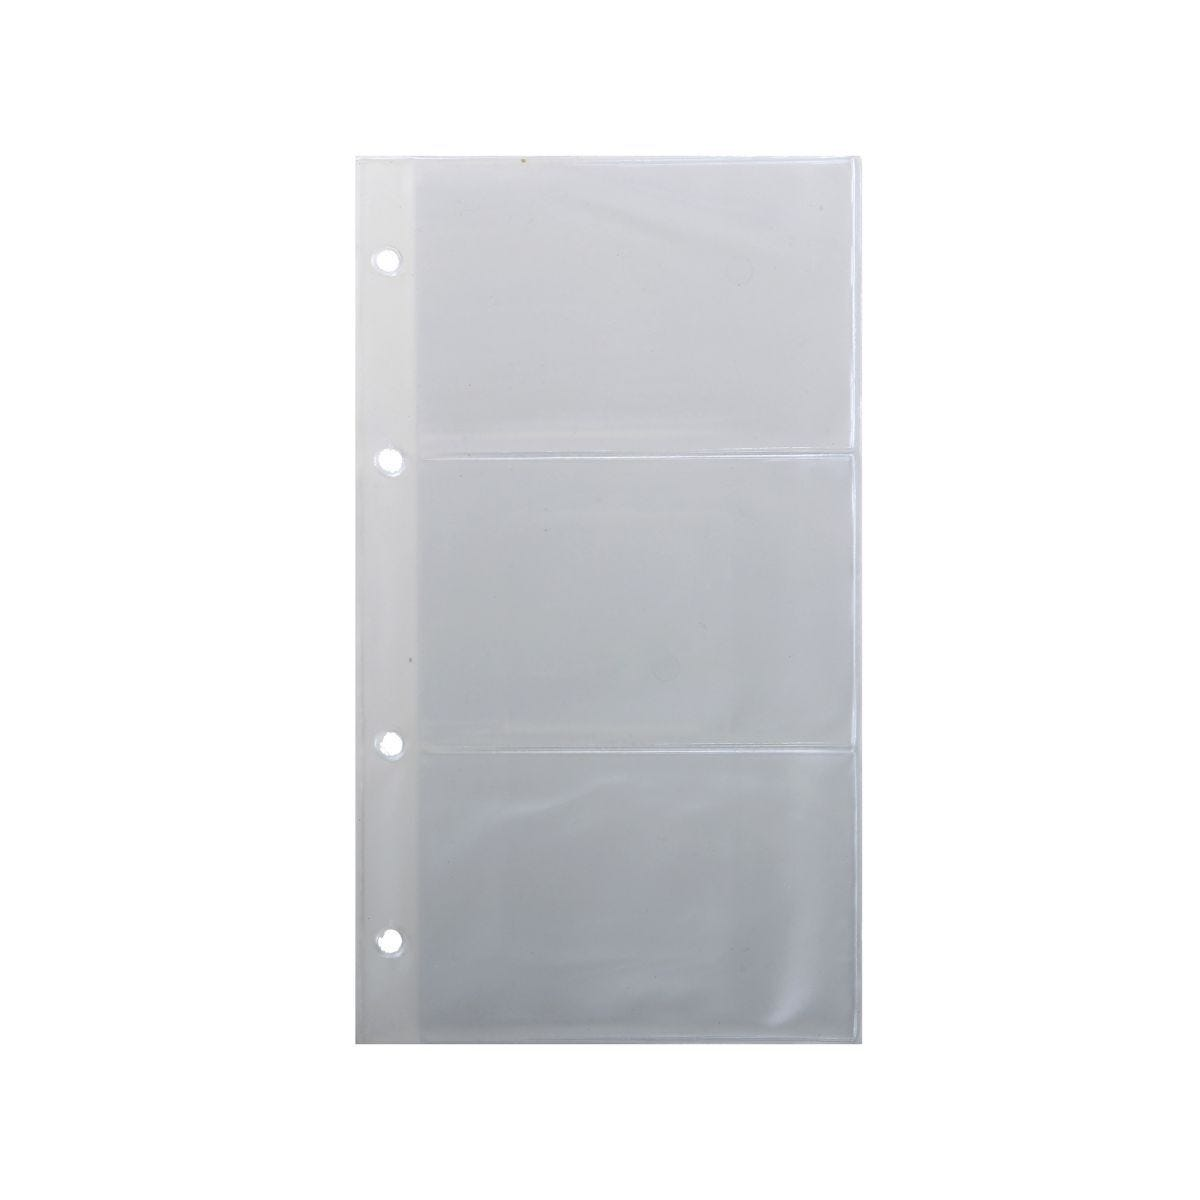 Ryman Business Card Holder Pack of 10 Holds 60 Cards